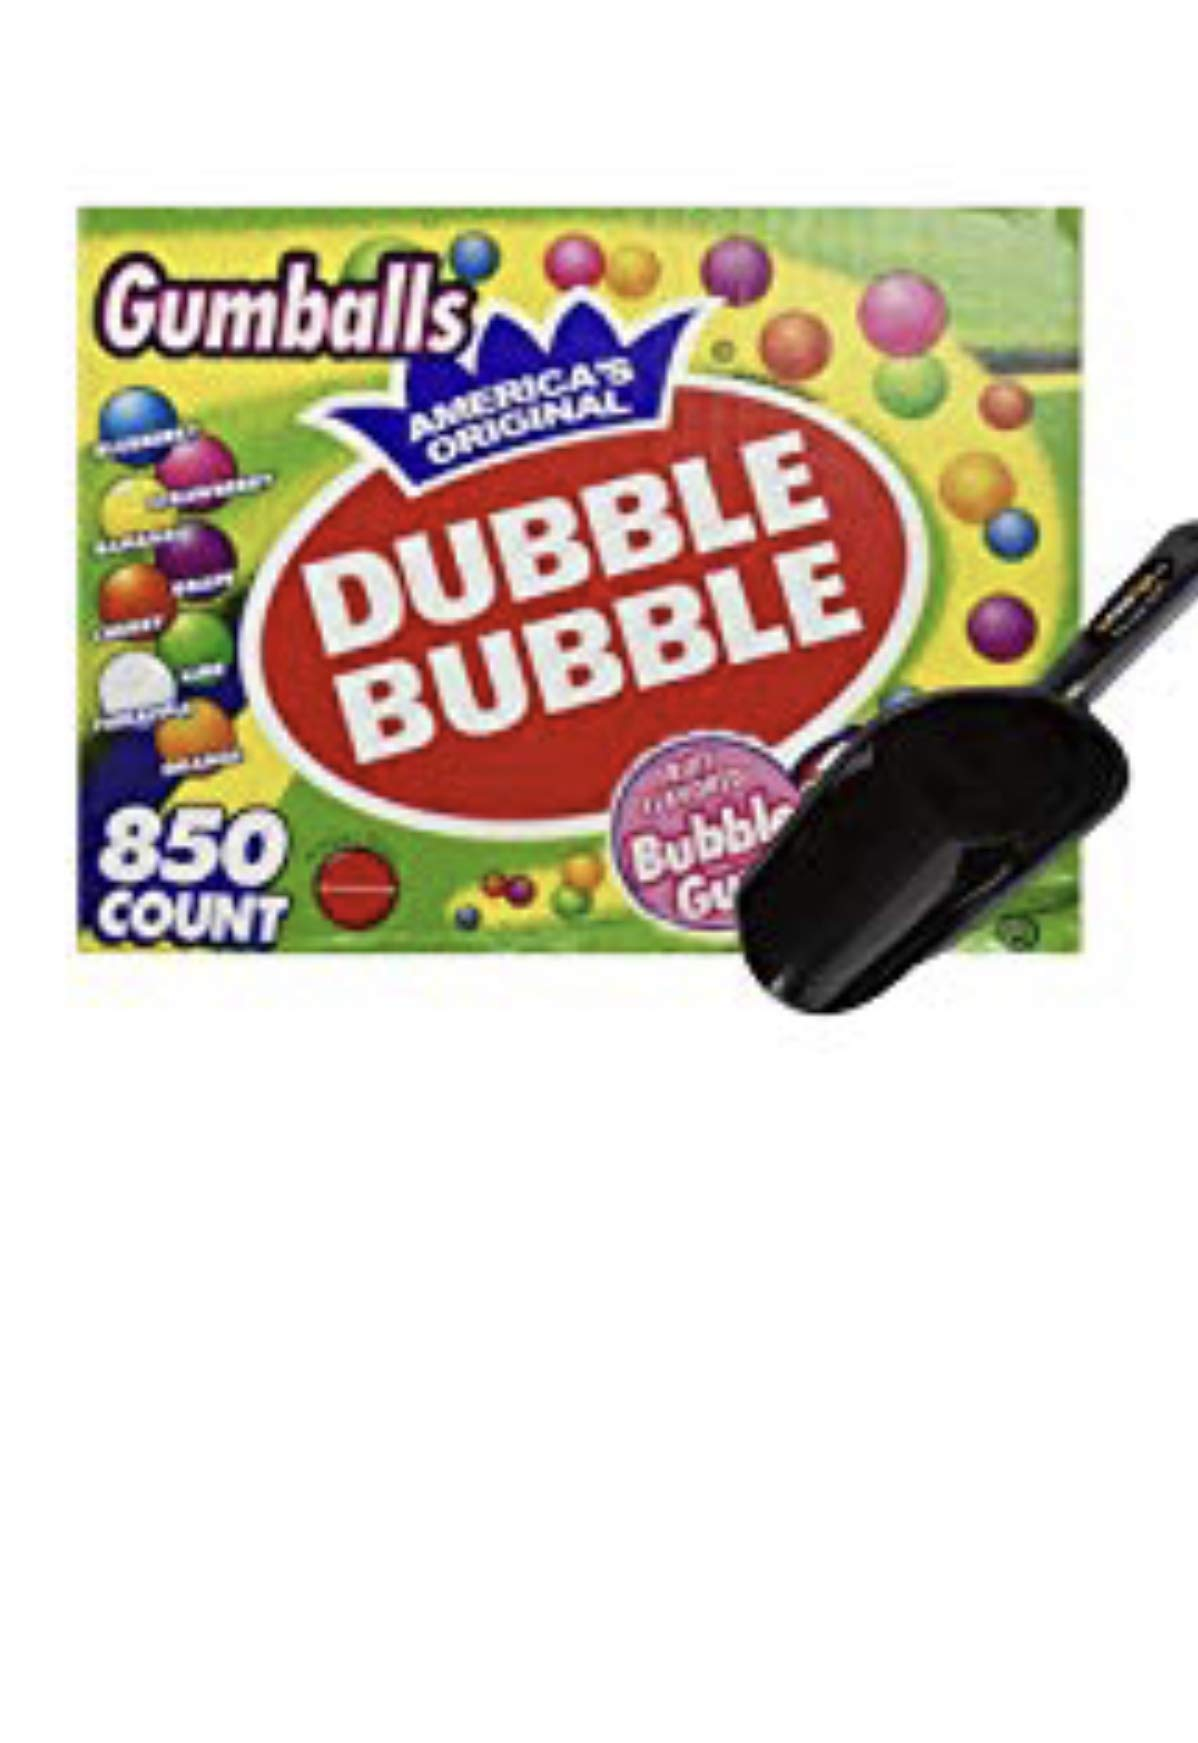 Dubble Bubble One Inch Gumballs 16 Pounds Assorted Flavors and Colors - 850 Count w/InPrimeTime Scoop by Dubble Bubble